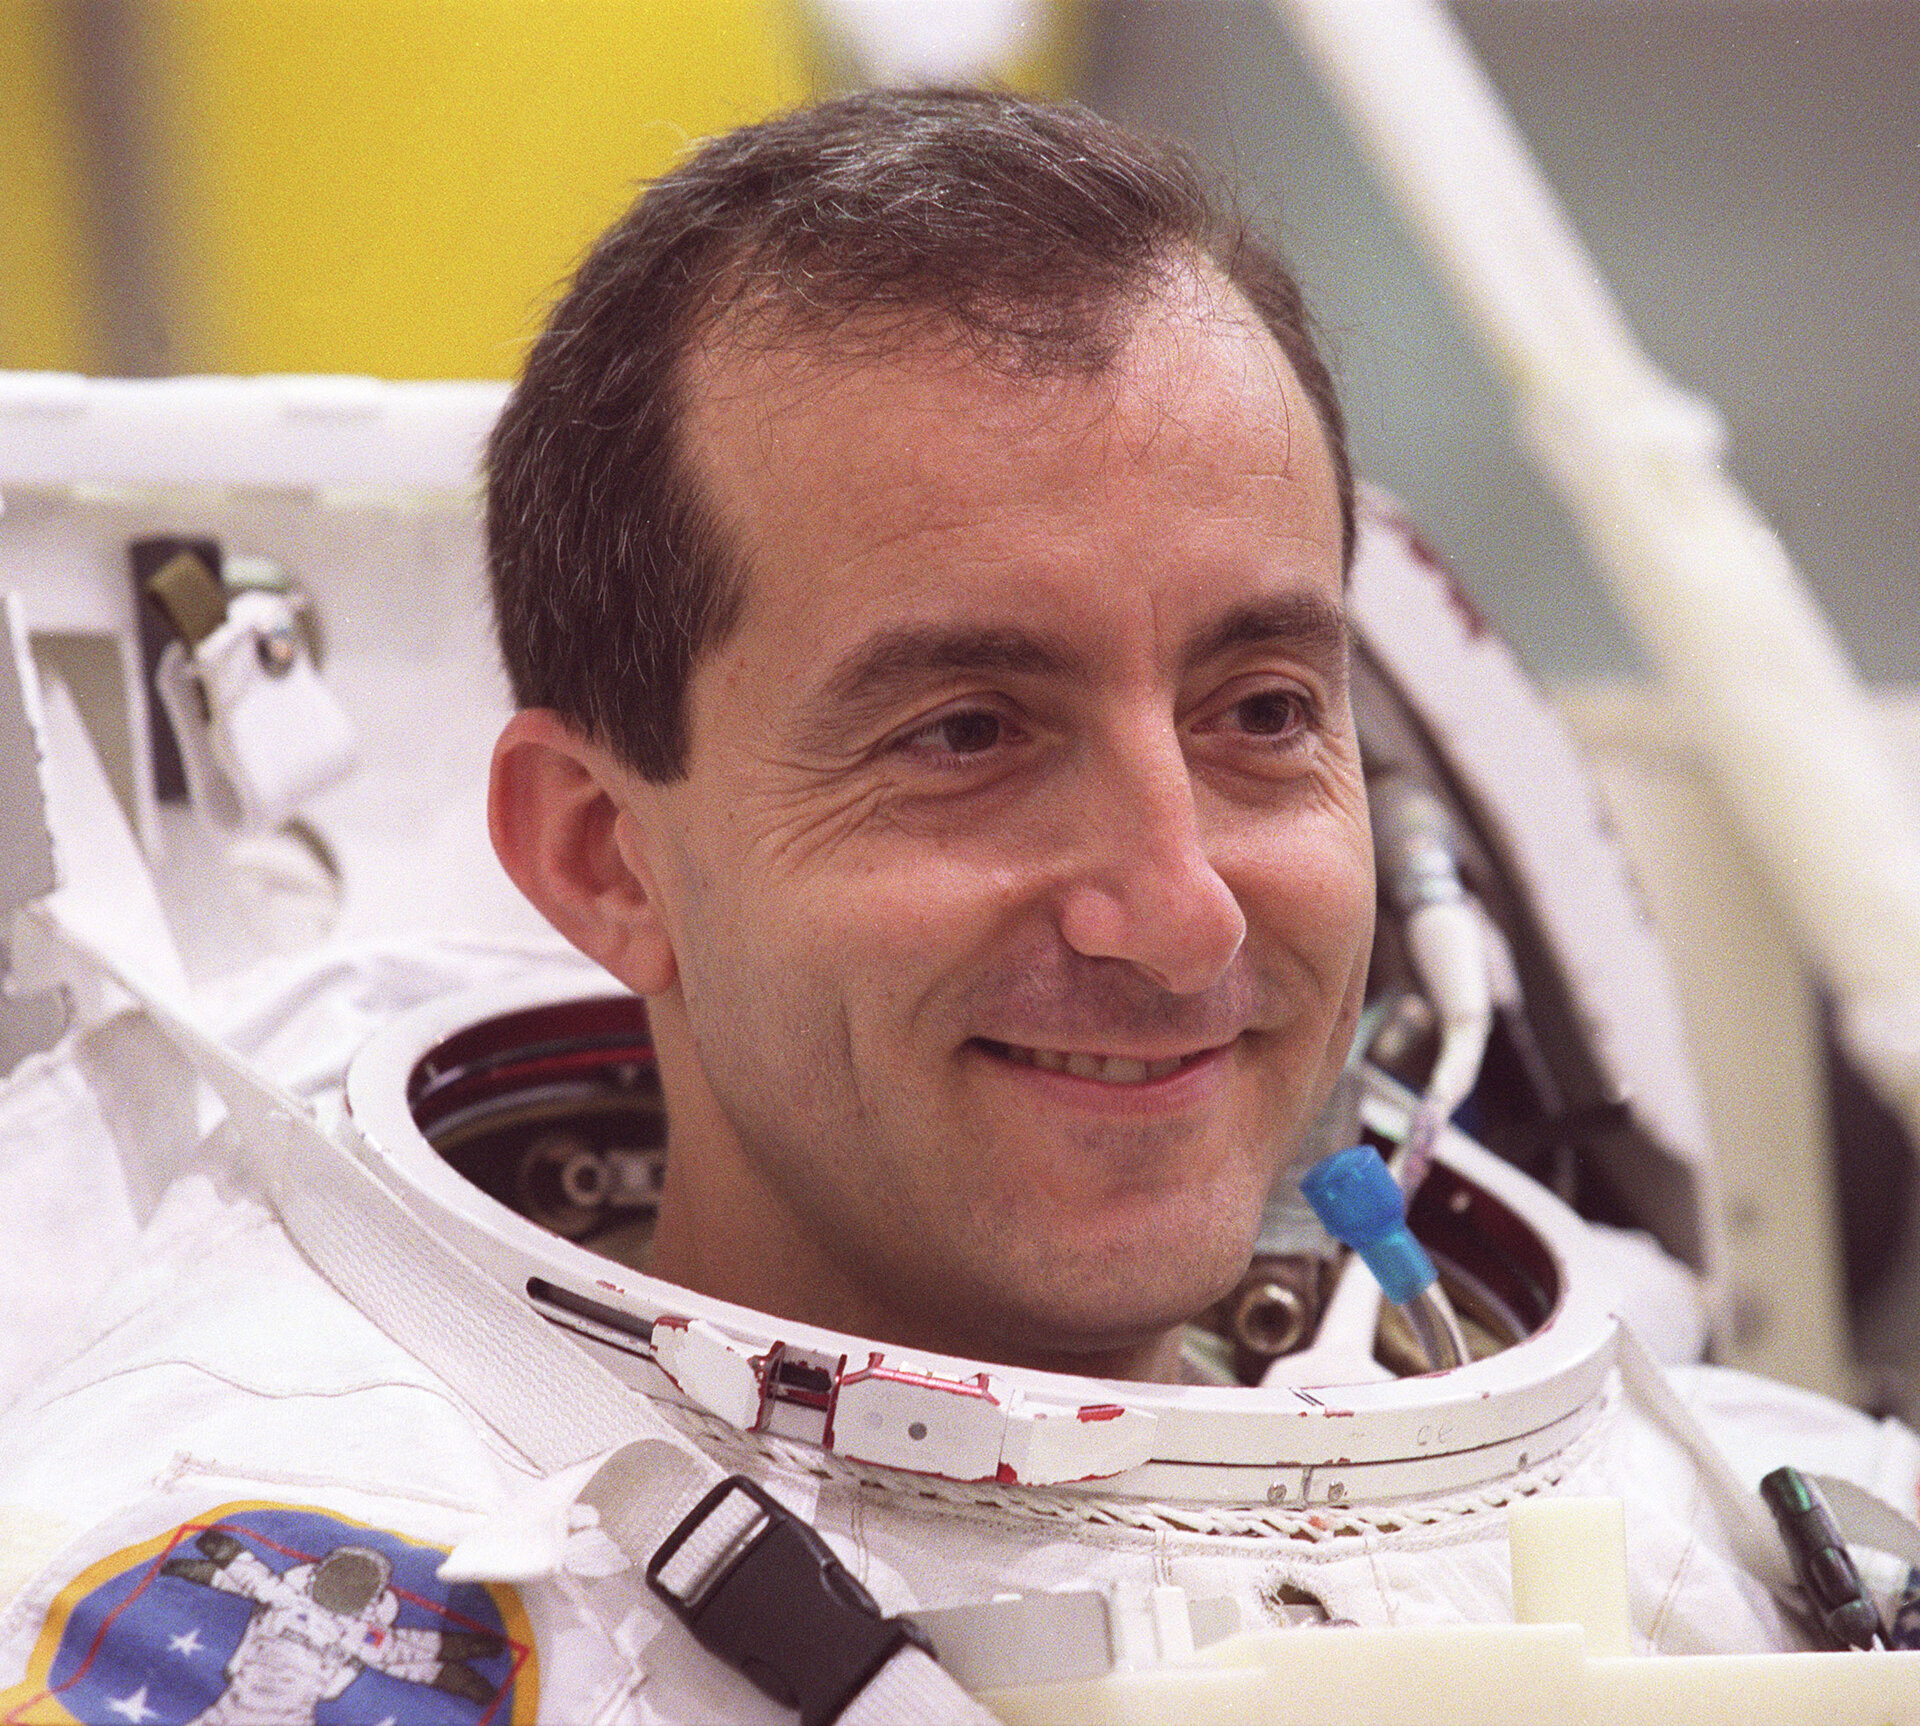 ESA astronaut Philippe Perrin is one of the four pilots